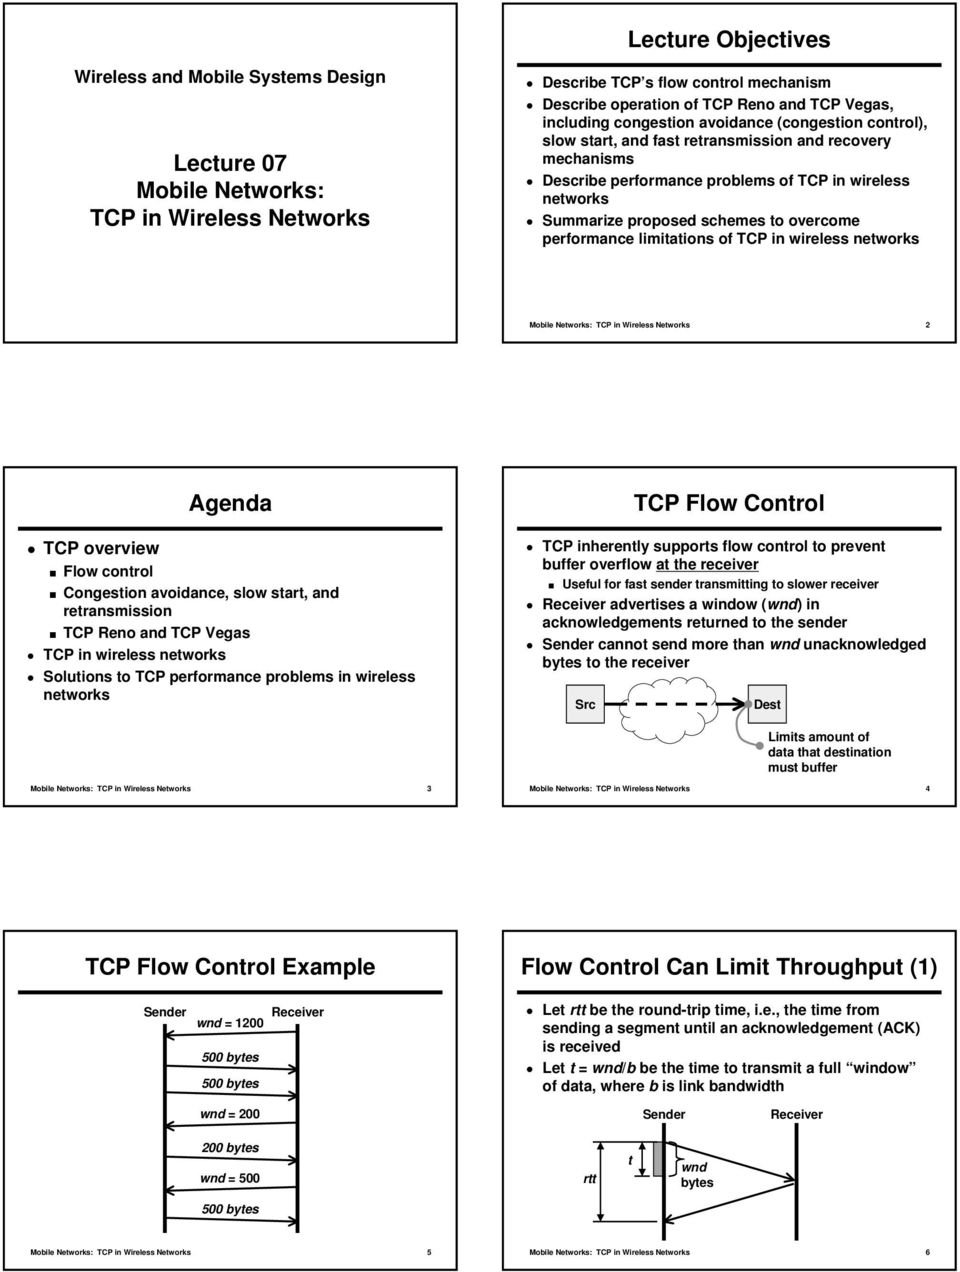 to overcome performance limitations of TCP in wireless networks Mobile Networks: TCP in Wireless Networks 2 Agenda TCP overview Flow control Congestion avoidance, slow start, and retransmission TCP